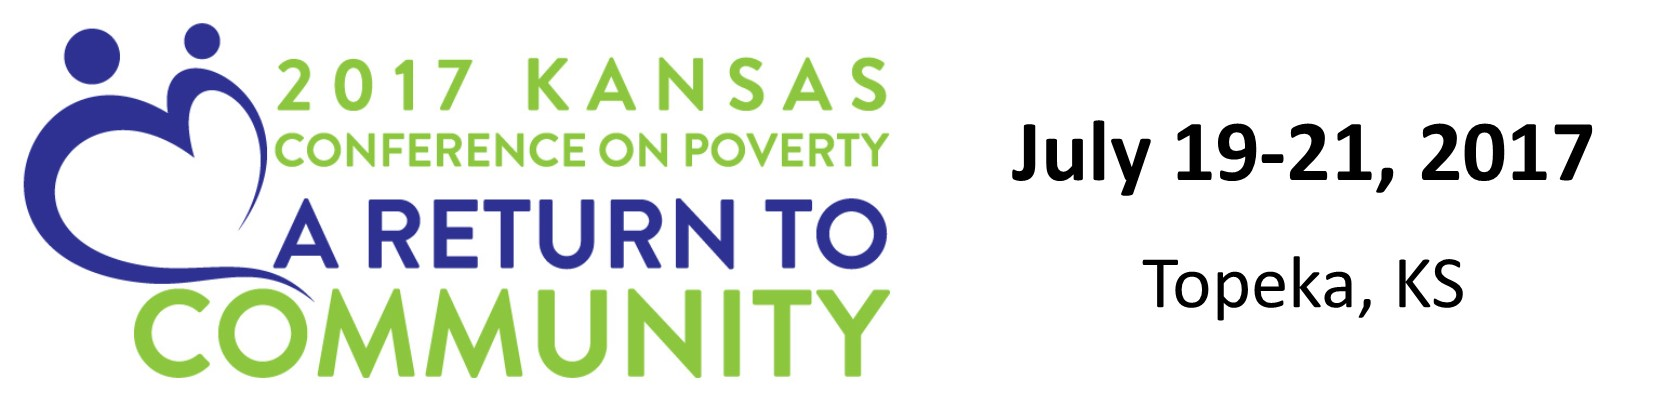 2017 Kansas Conference on Poverty